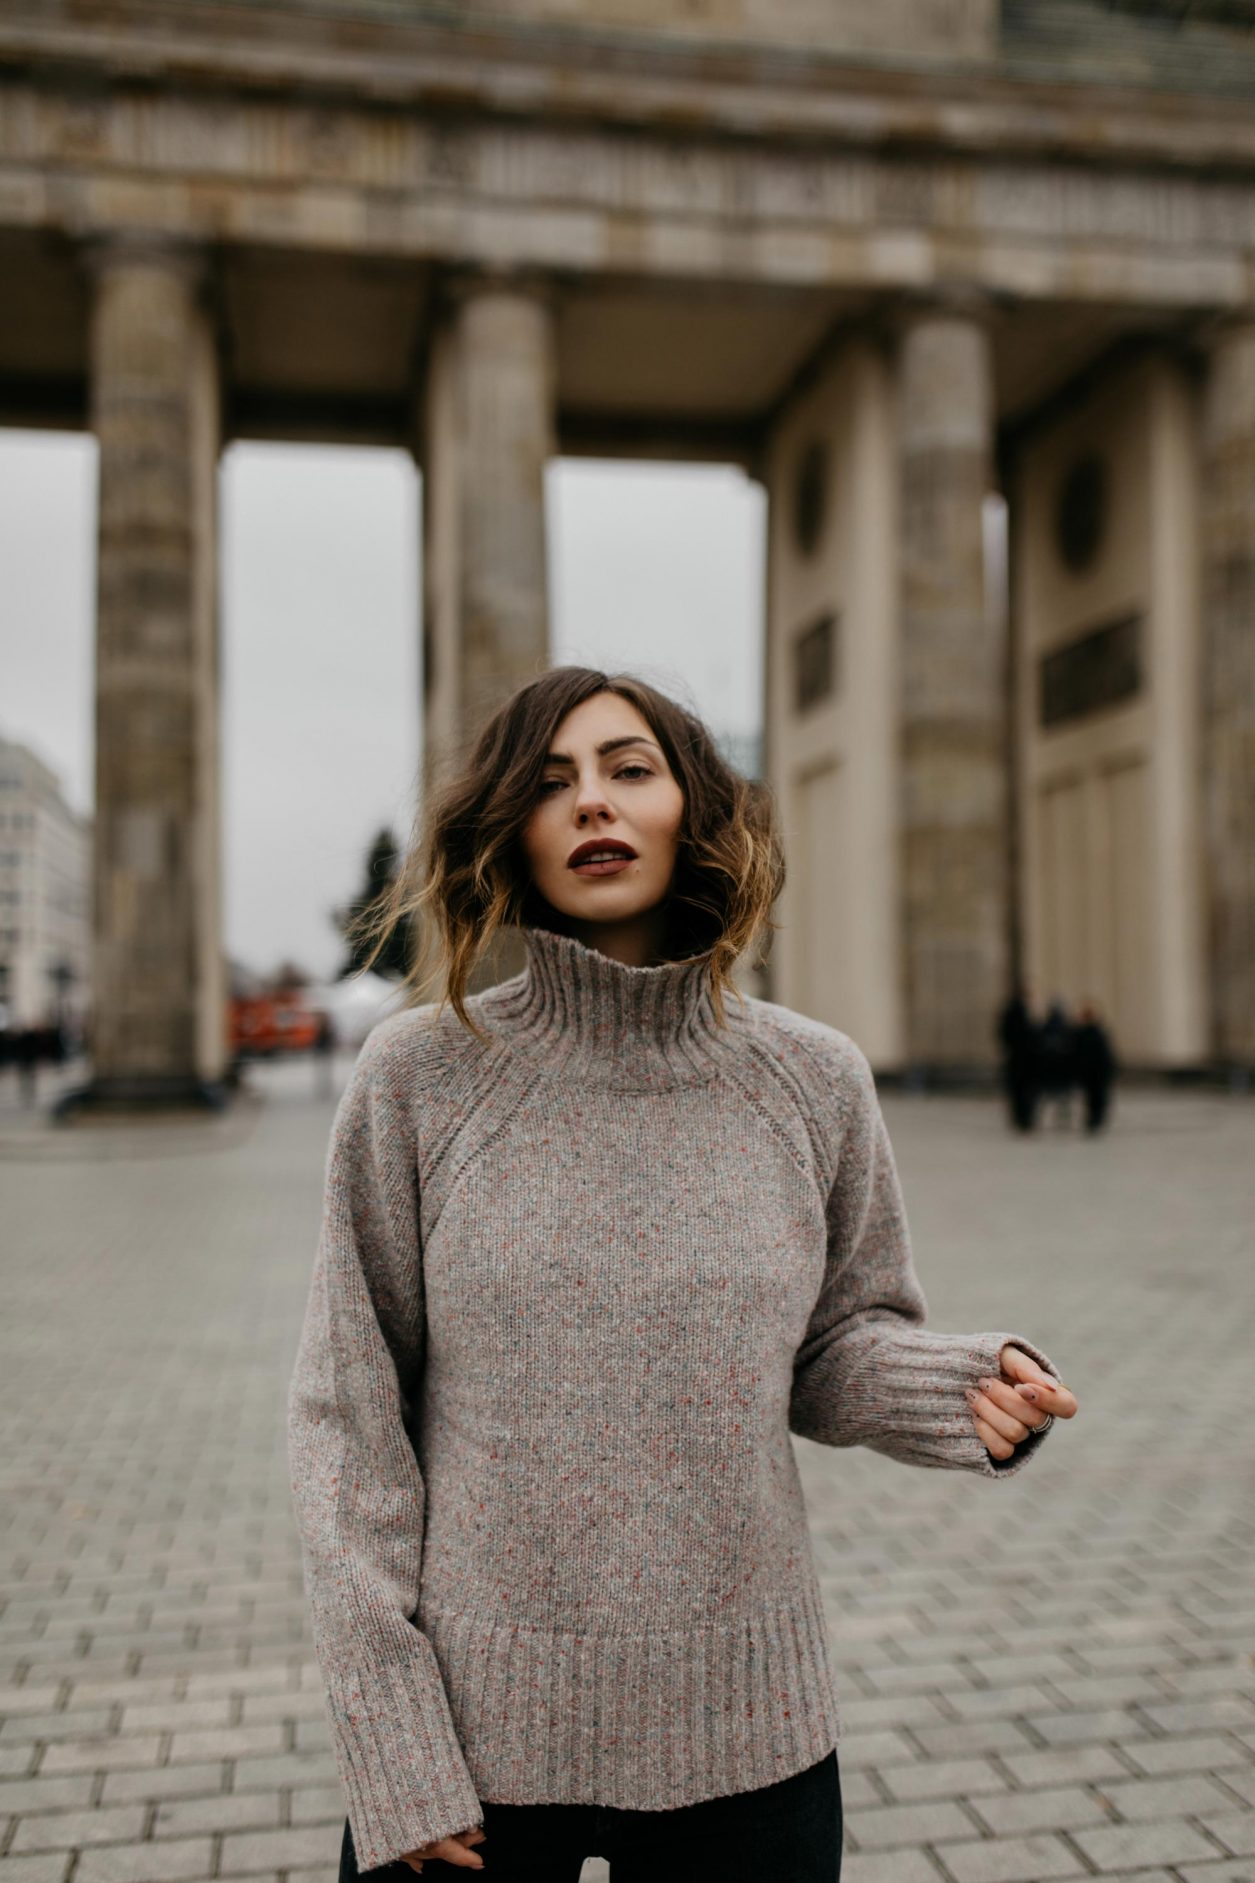 Streetstyle by Masha Sedgwick | AW 19 outfit: brown knit Closed | Berlin sightseeing photo spot: Brandenburger Tor